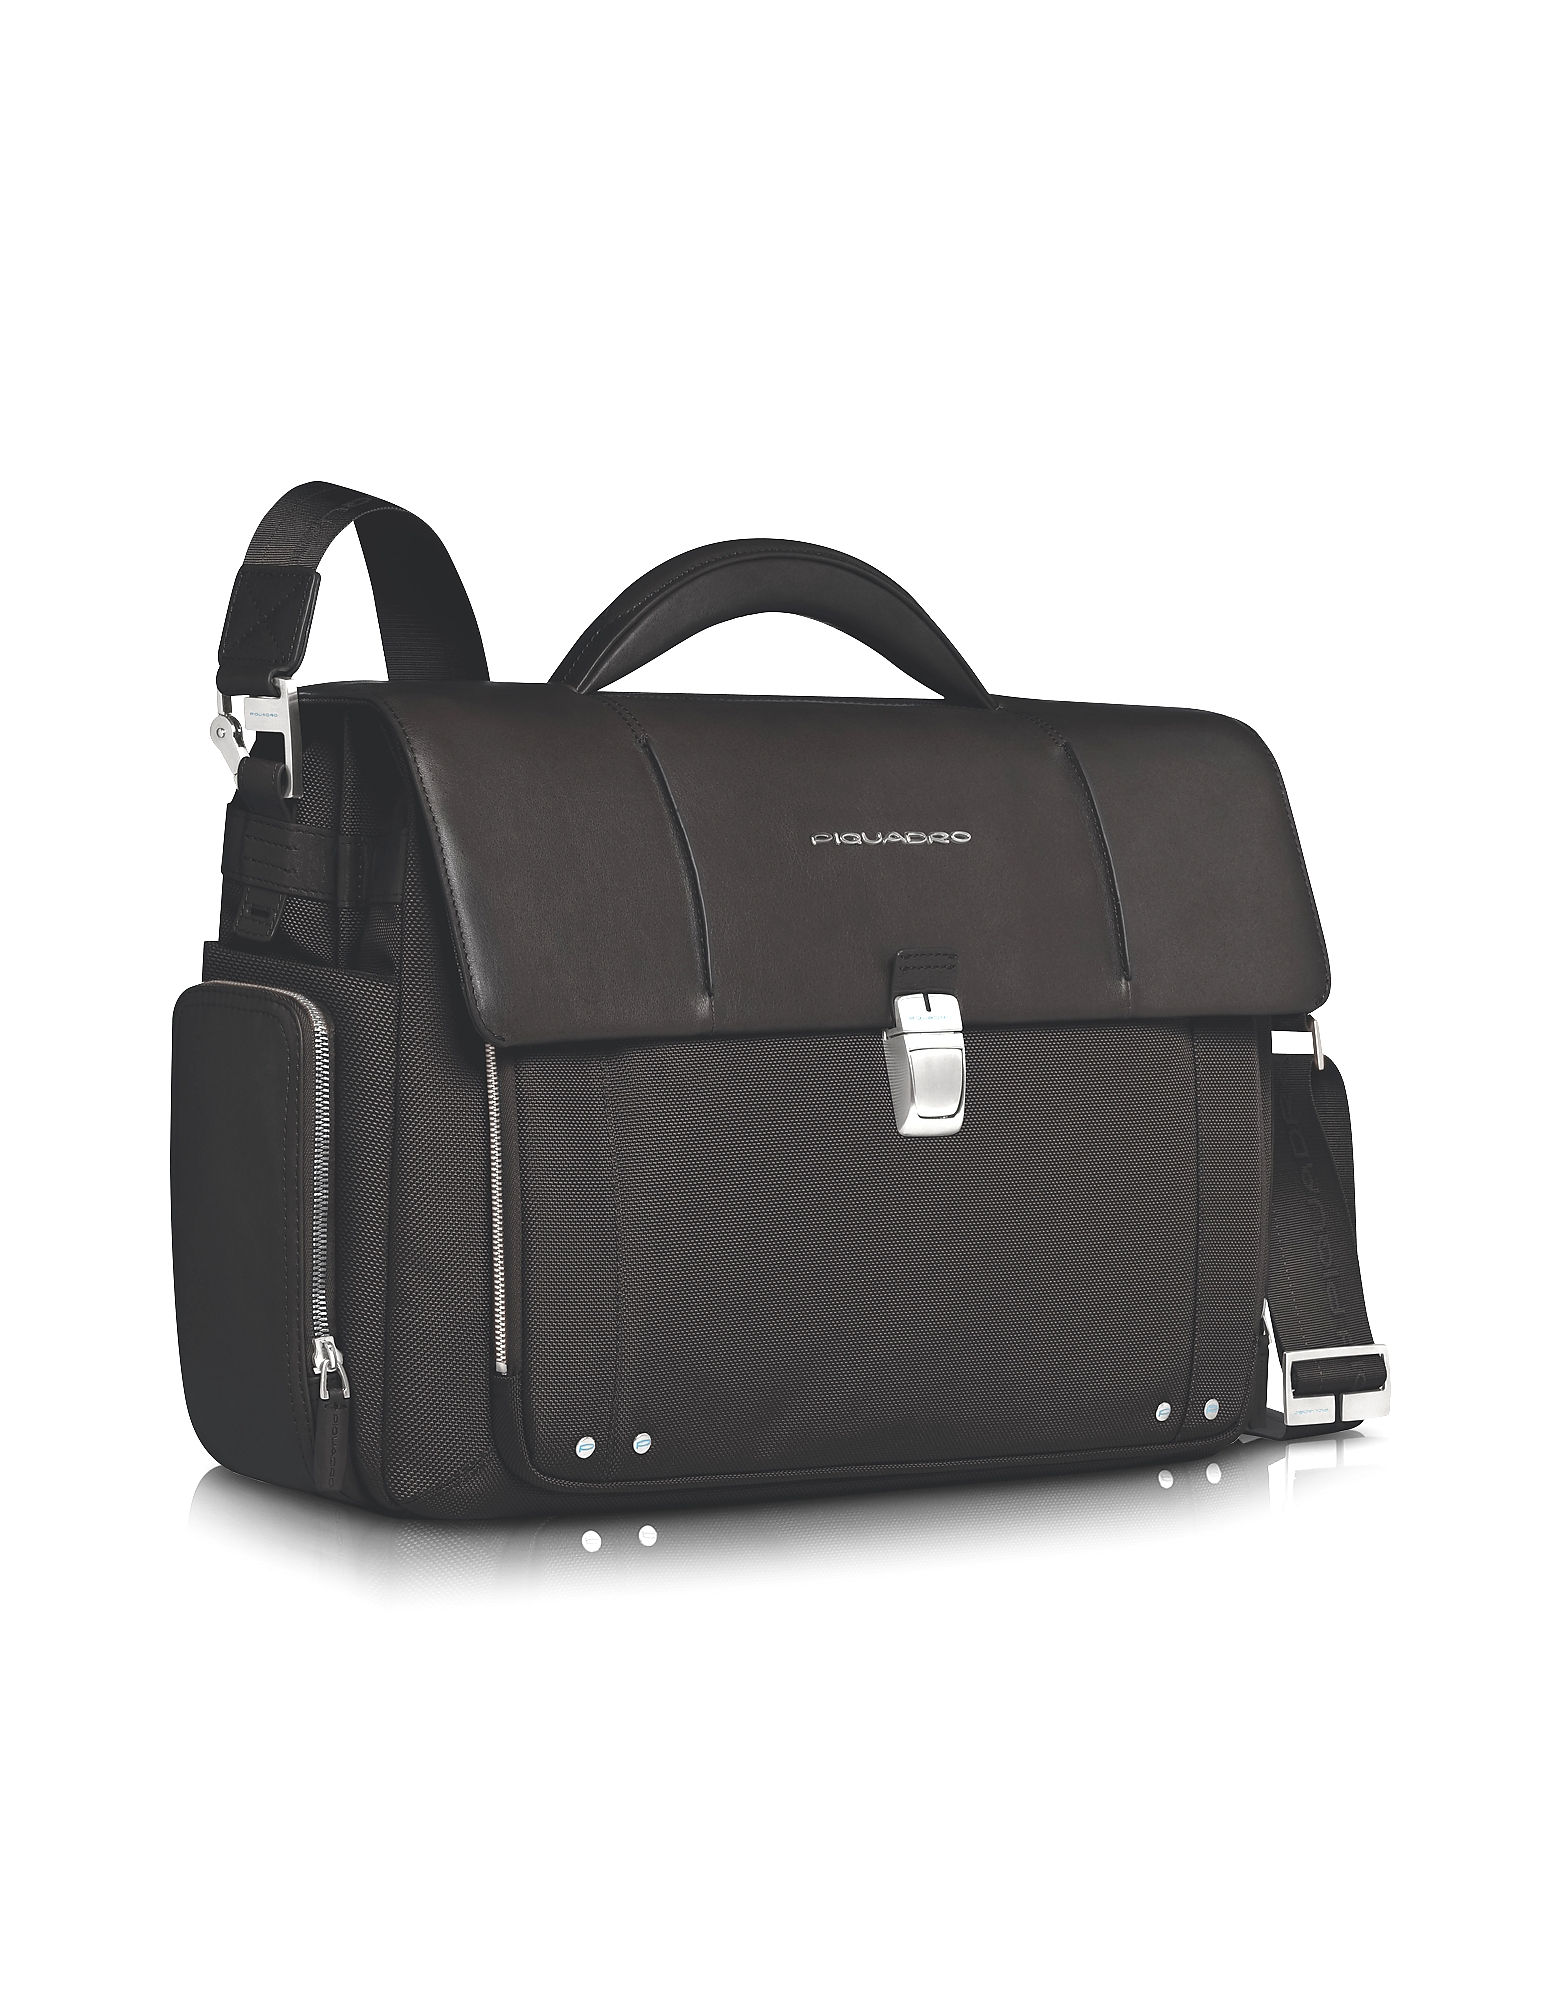 "Piquadro Briefcases, Link - Front Pocket Double Gusset 15"" Laptop Briefcase"